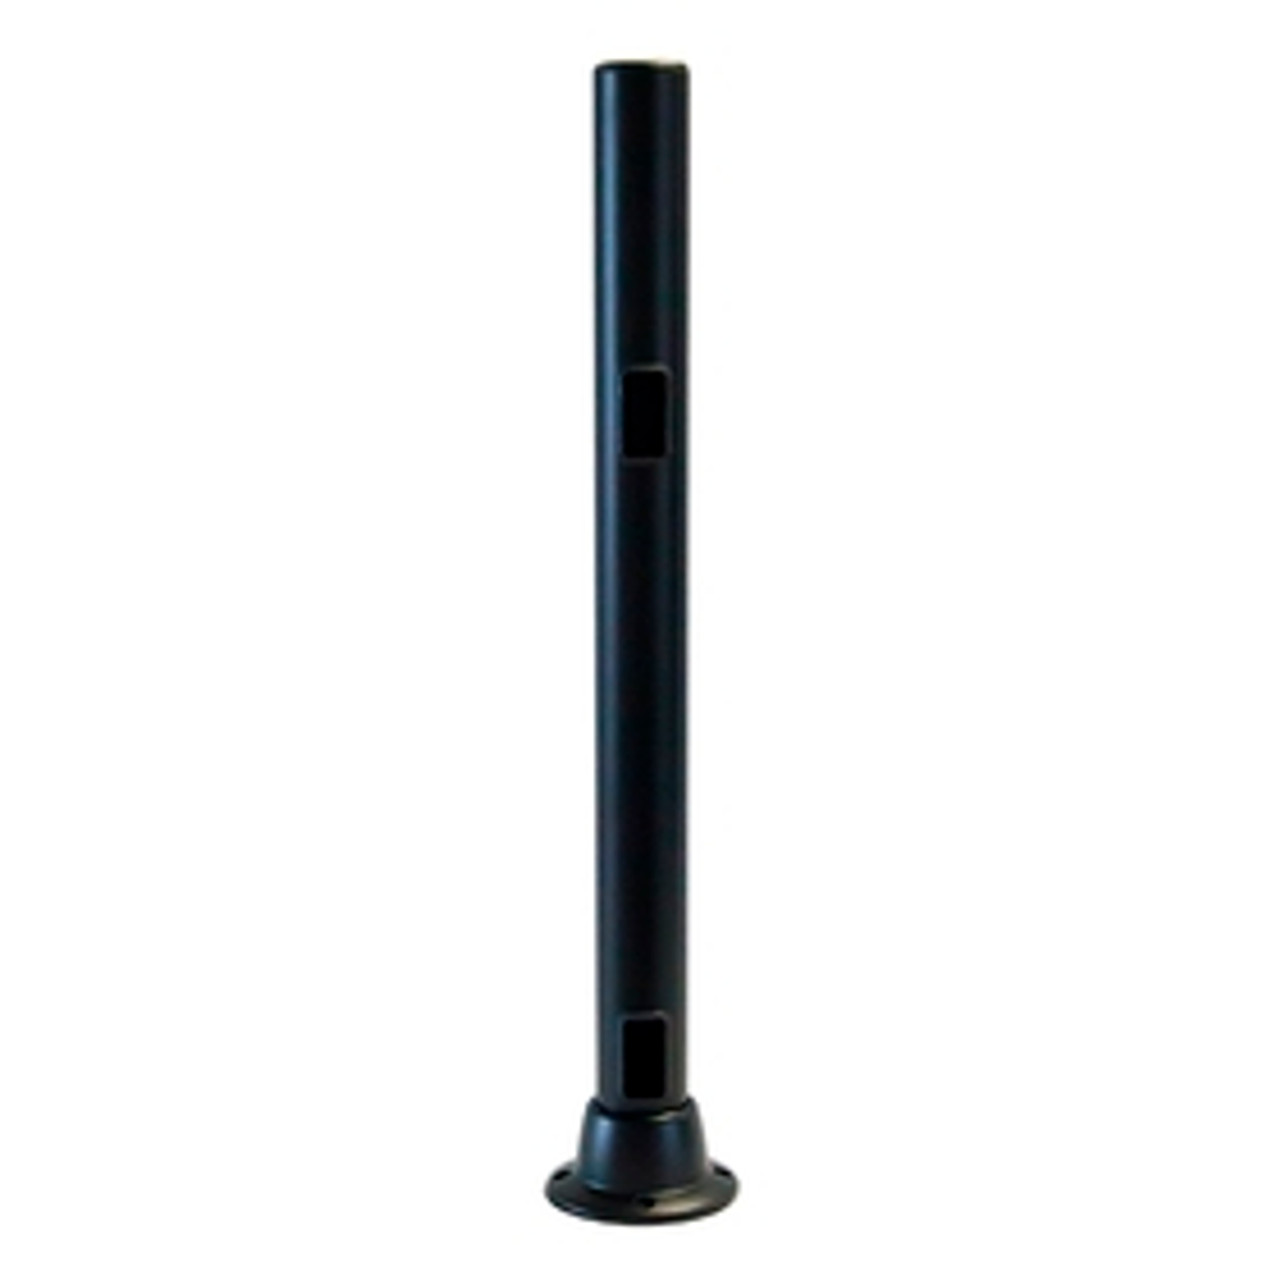 POS Grommet Mount Base 16 inch Pole